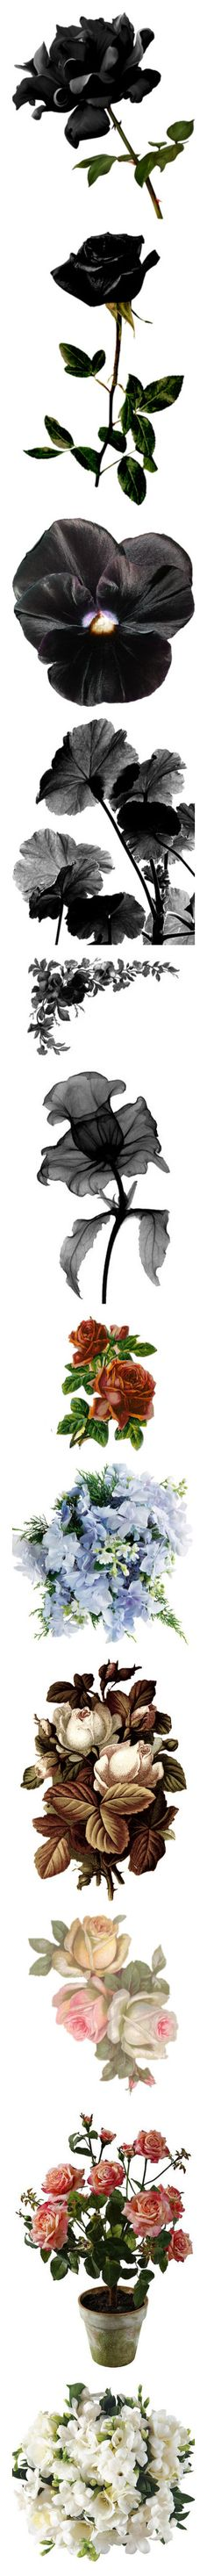 """""""Flowers and leaves III"""" by dracaria on Polyvore"""